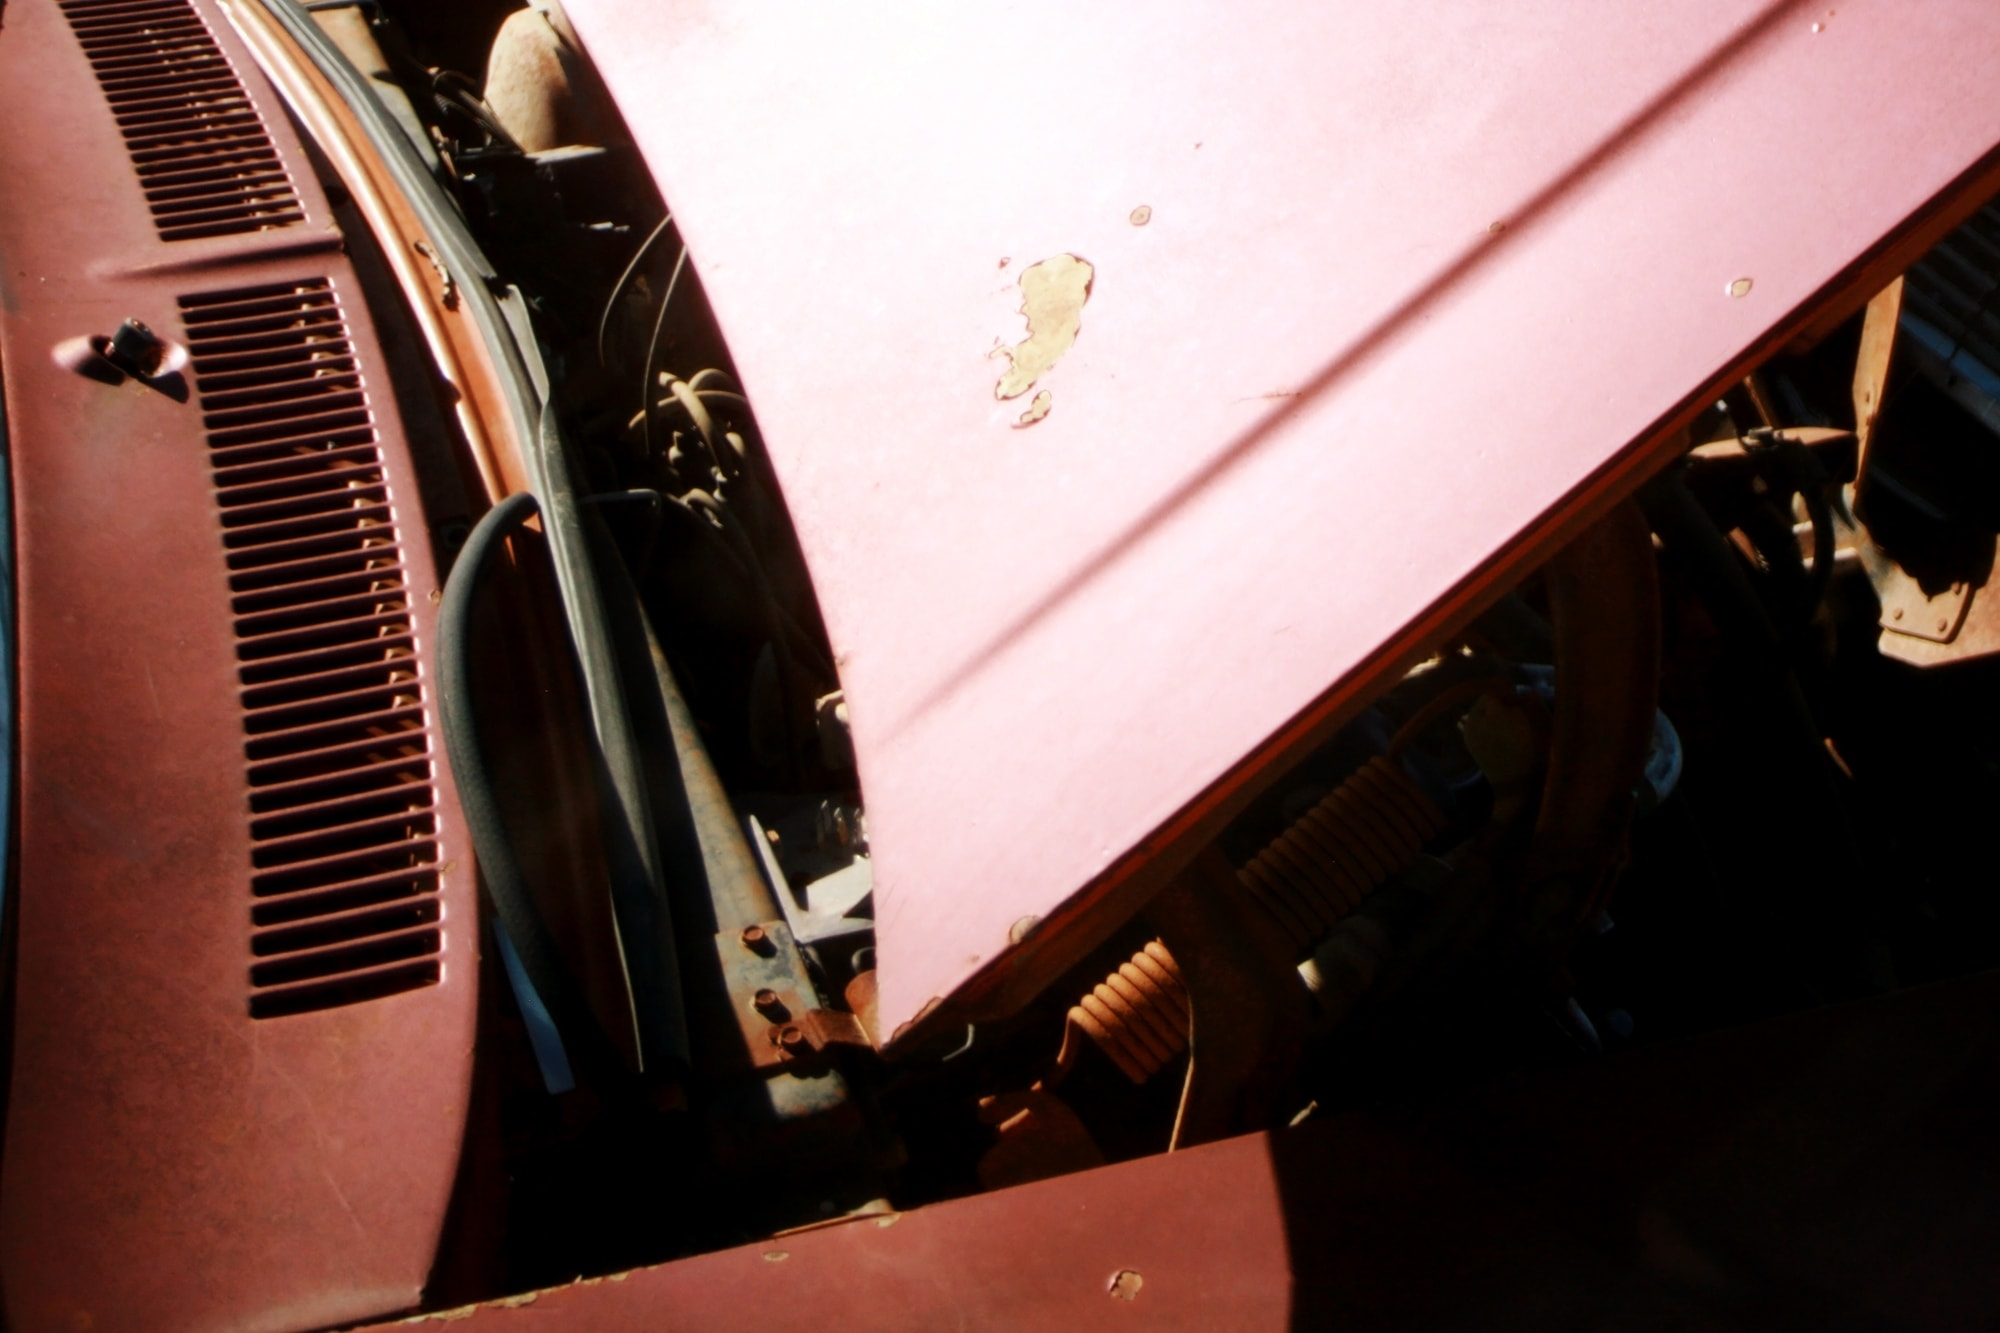 Picture from the salvage yard